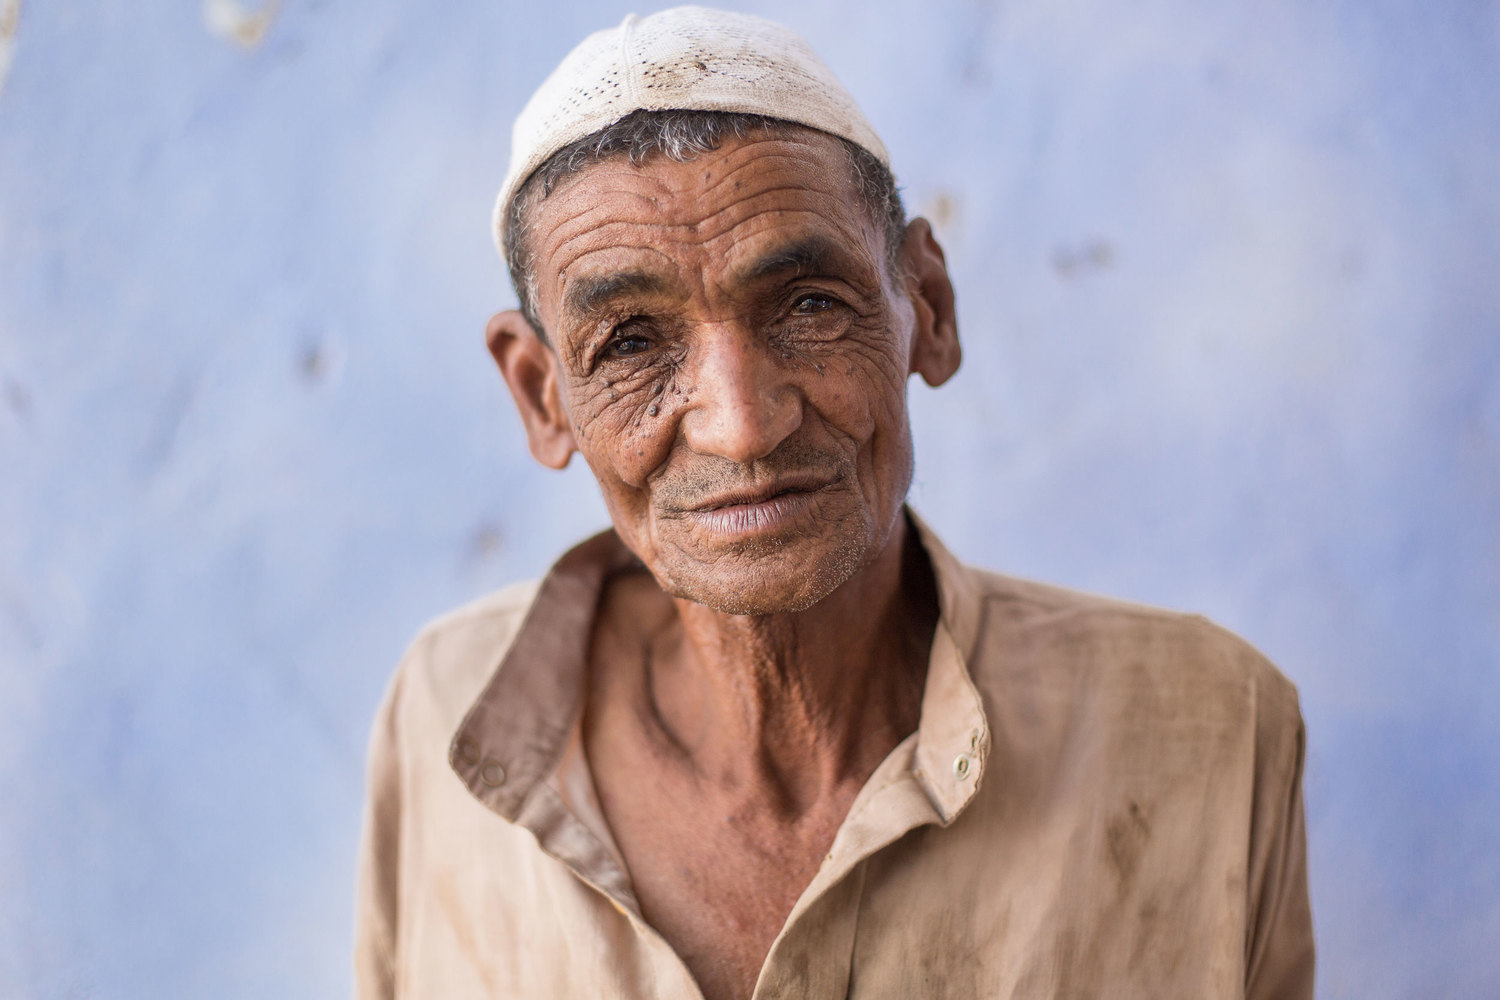 Nounou, an elderly resident of Seheil Island in Aswan.